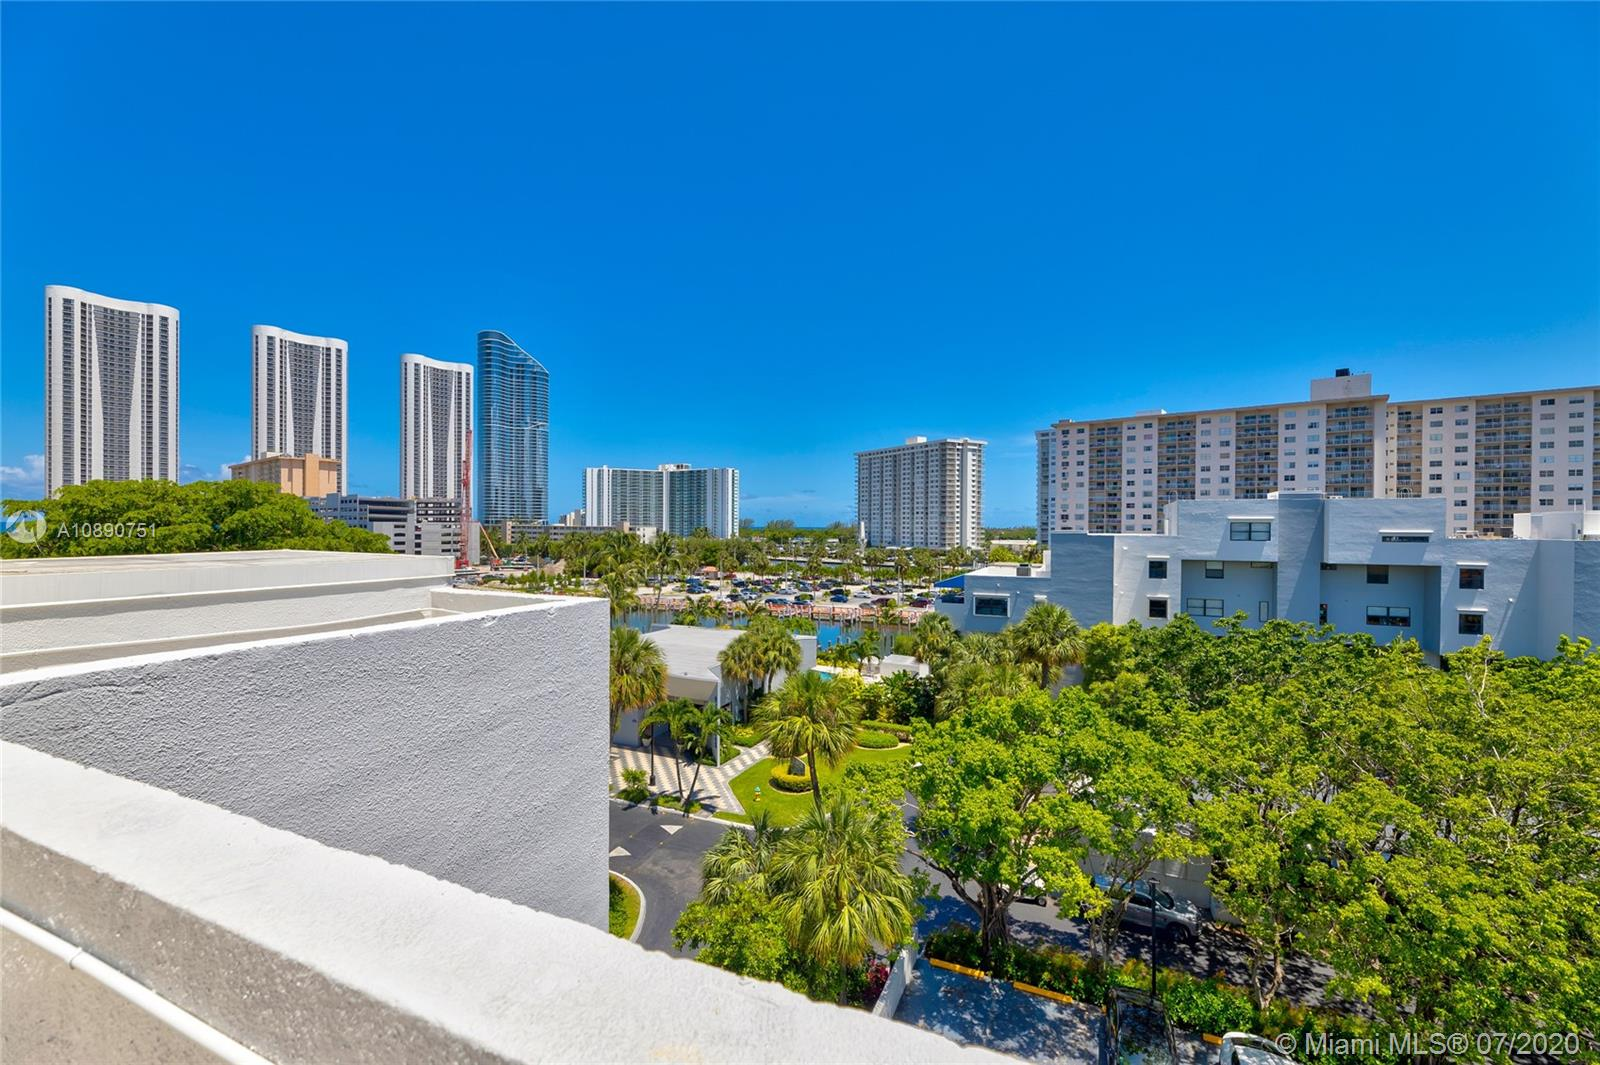 Photo of 425 Poinciana Island Drive #1444, Sunny Isles Beach, Florida, 33160 - Kitchen with views to the north terrace